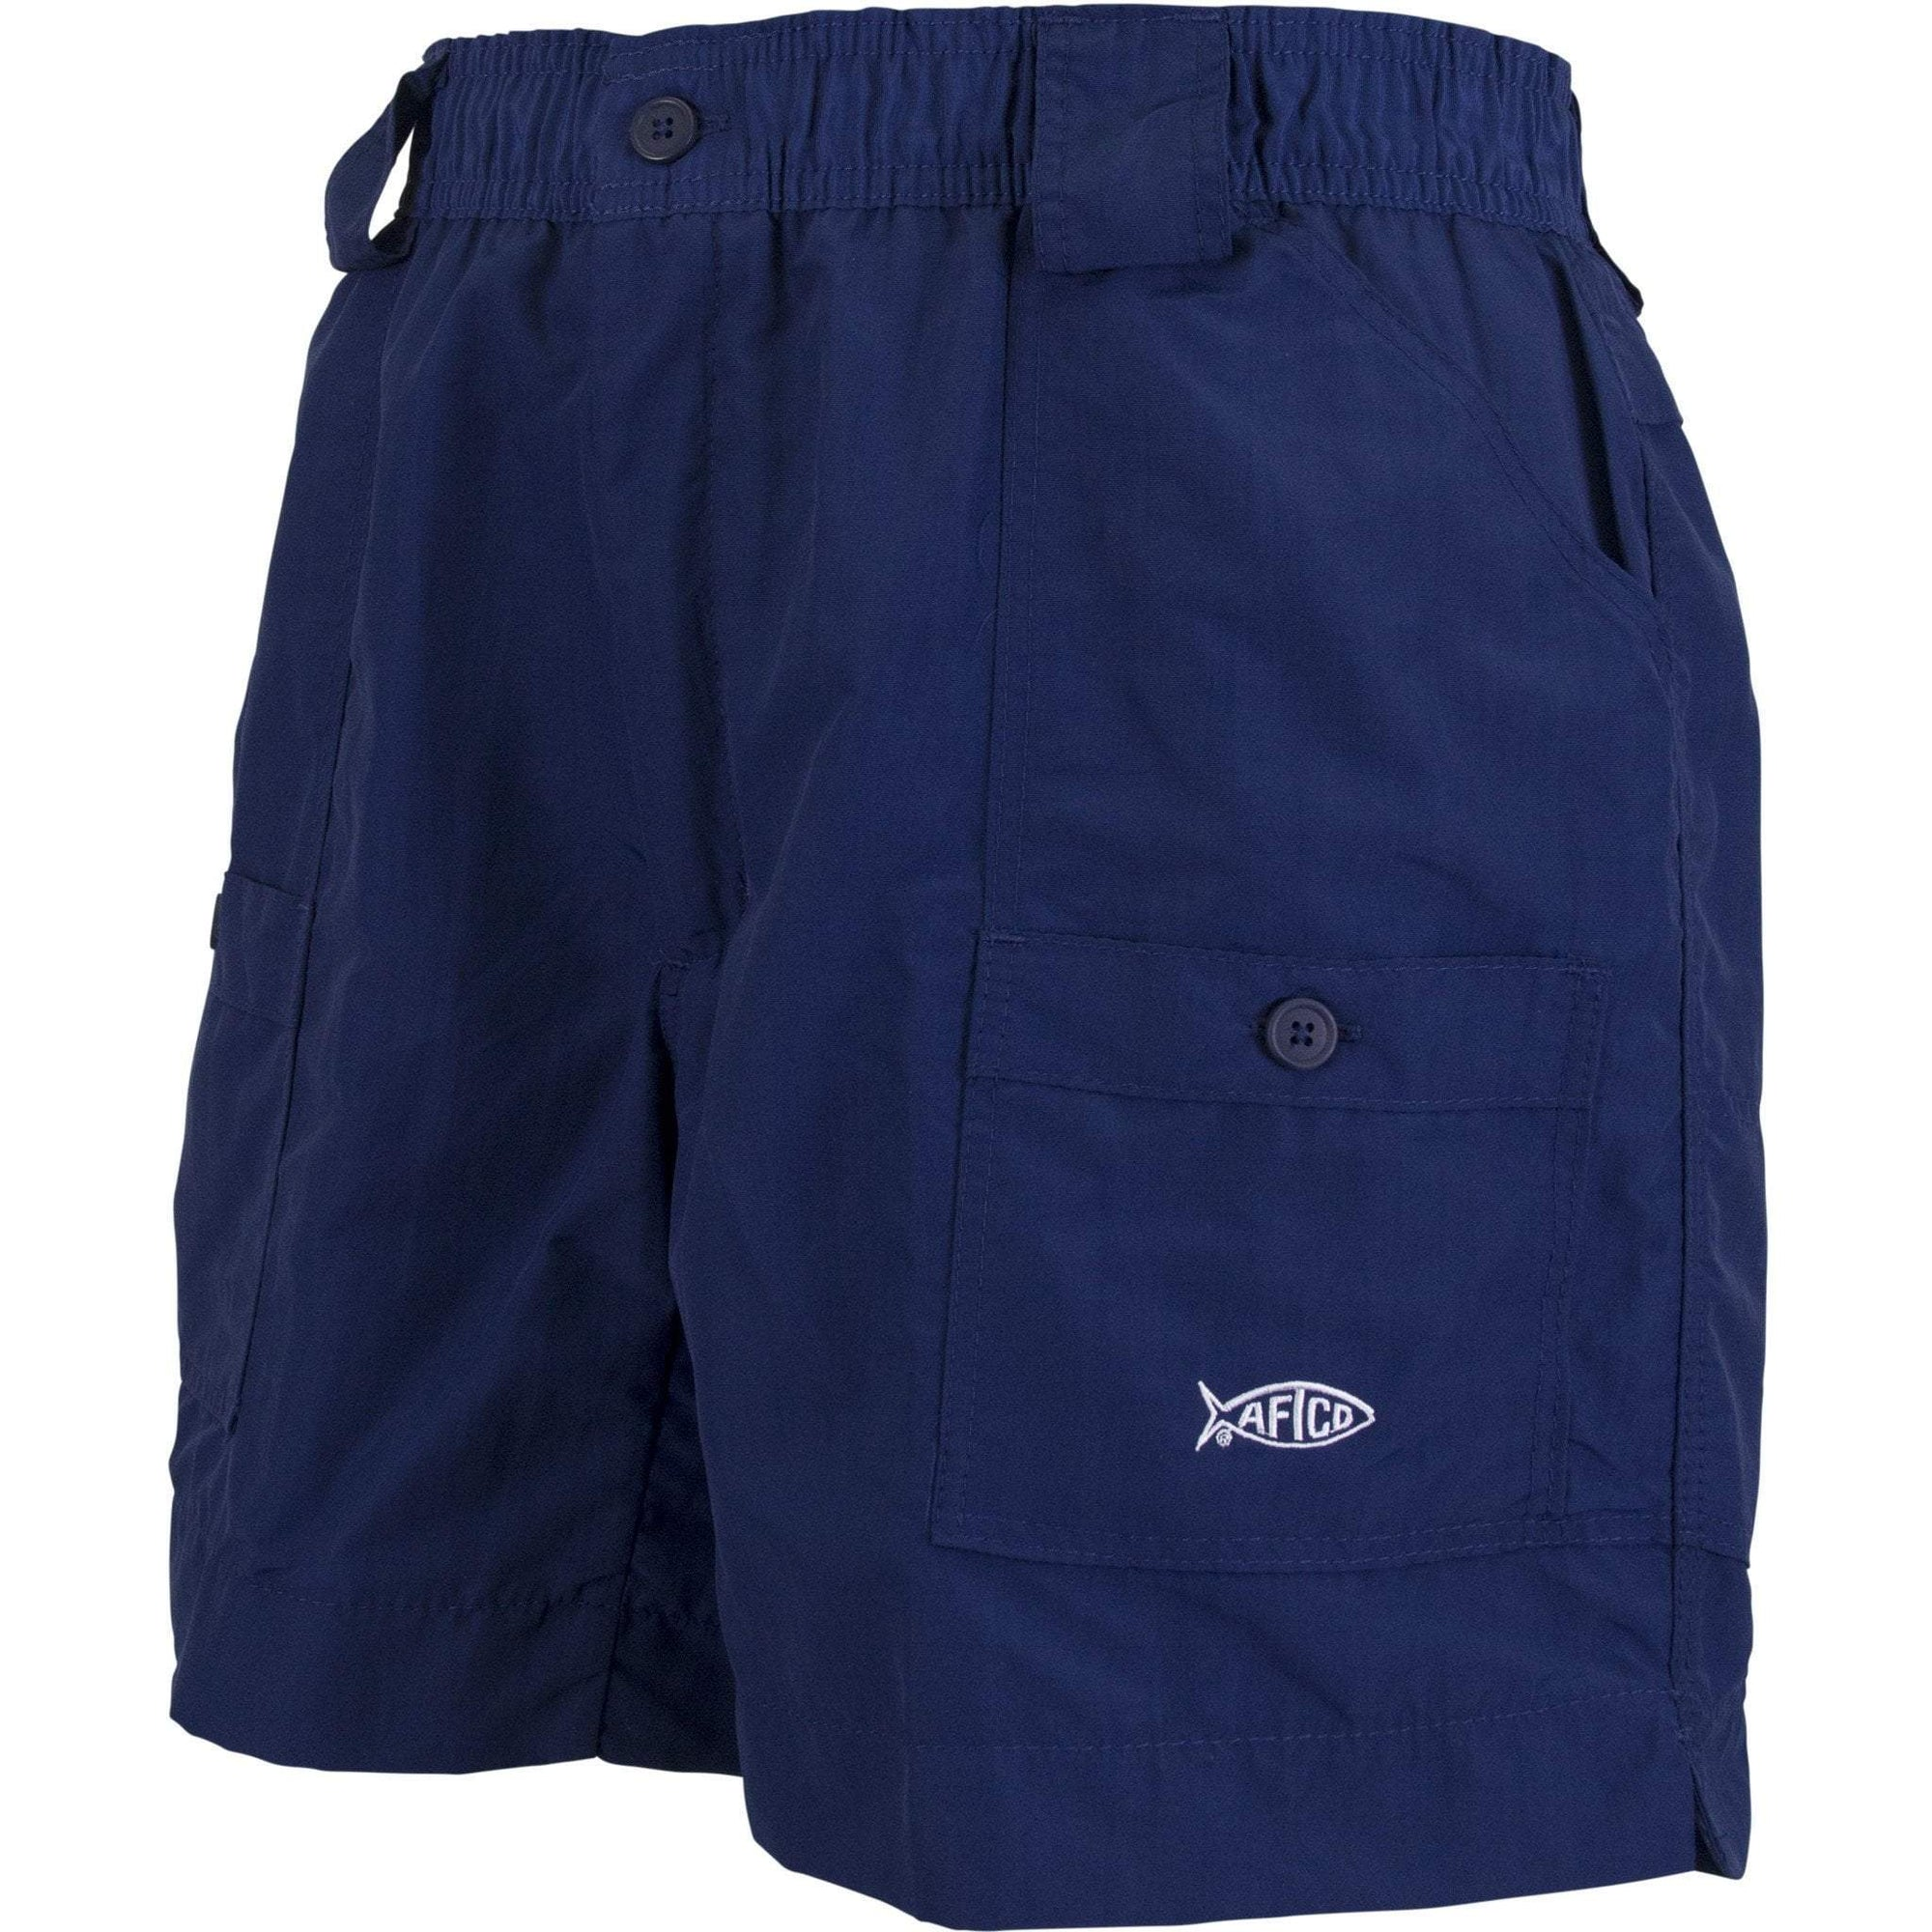 "AFTCO MFG Men's Shorts Aftco Original Fishing Shorts 6"" - Navy 